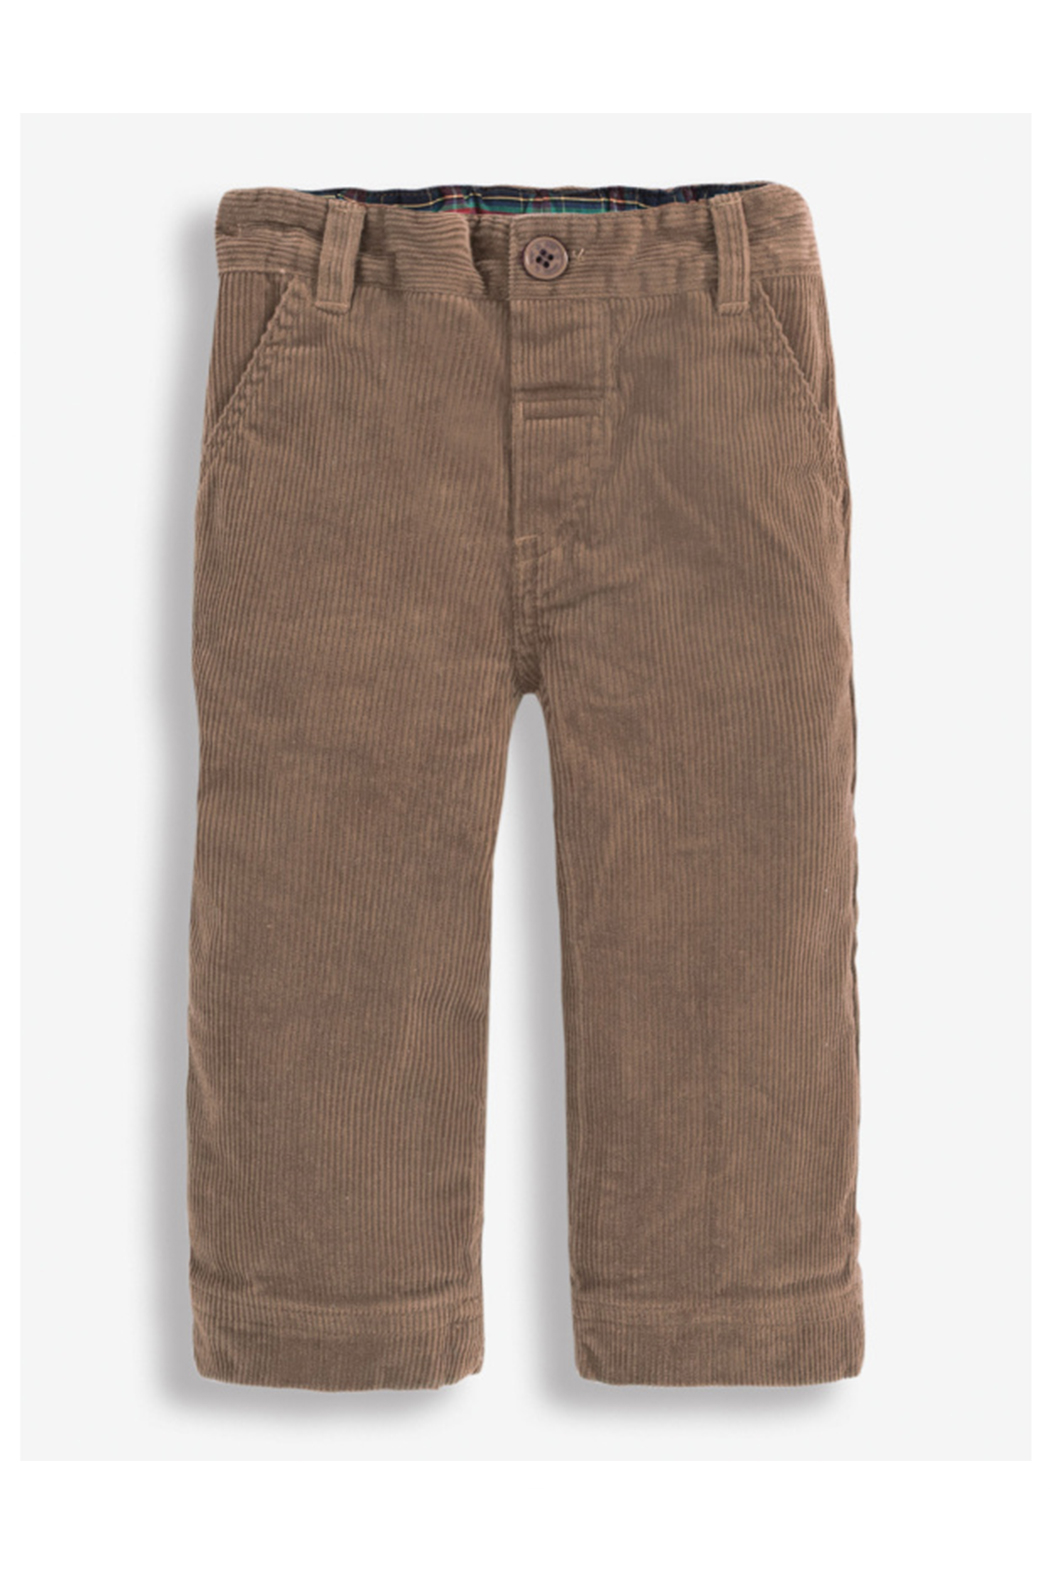 JoJo Maman Bebe Cord Trousers - Fawn - Front Cropped Image